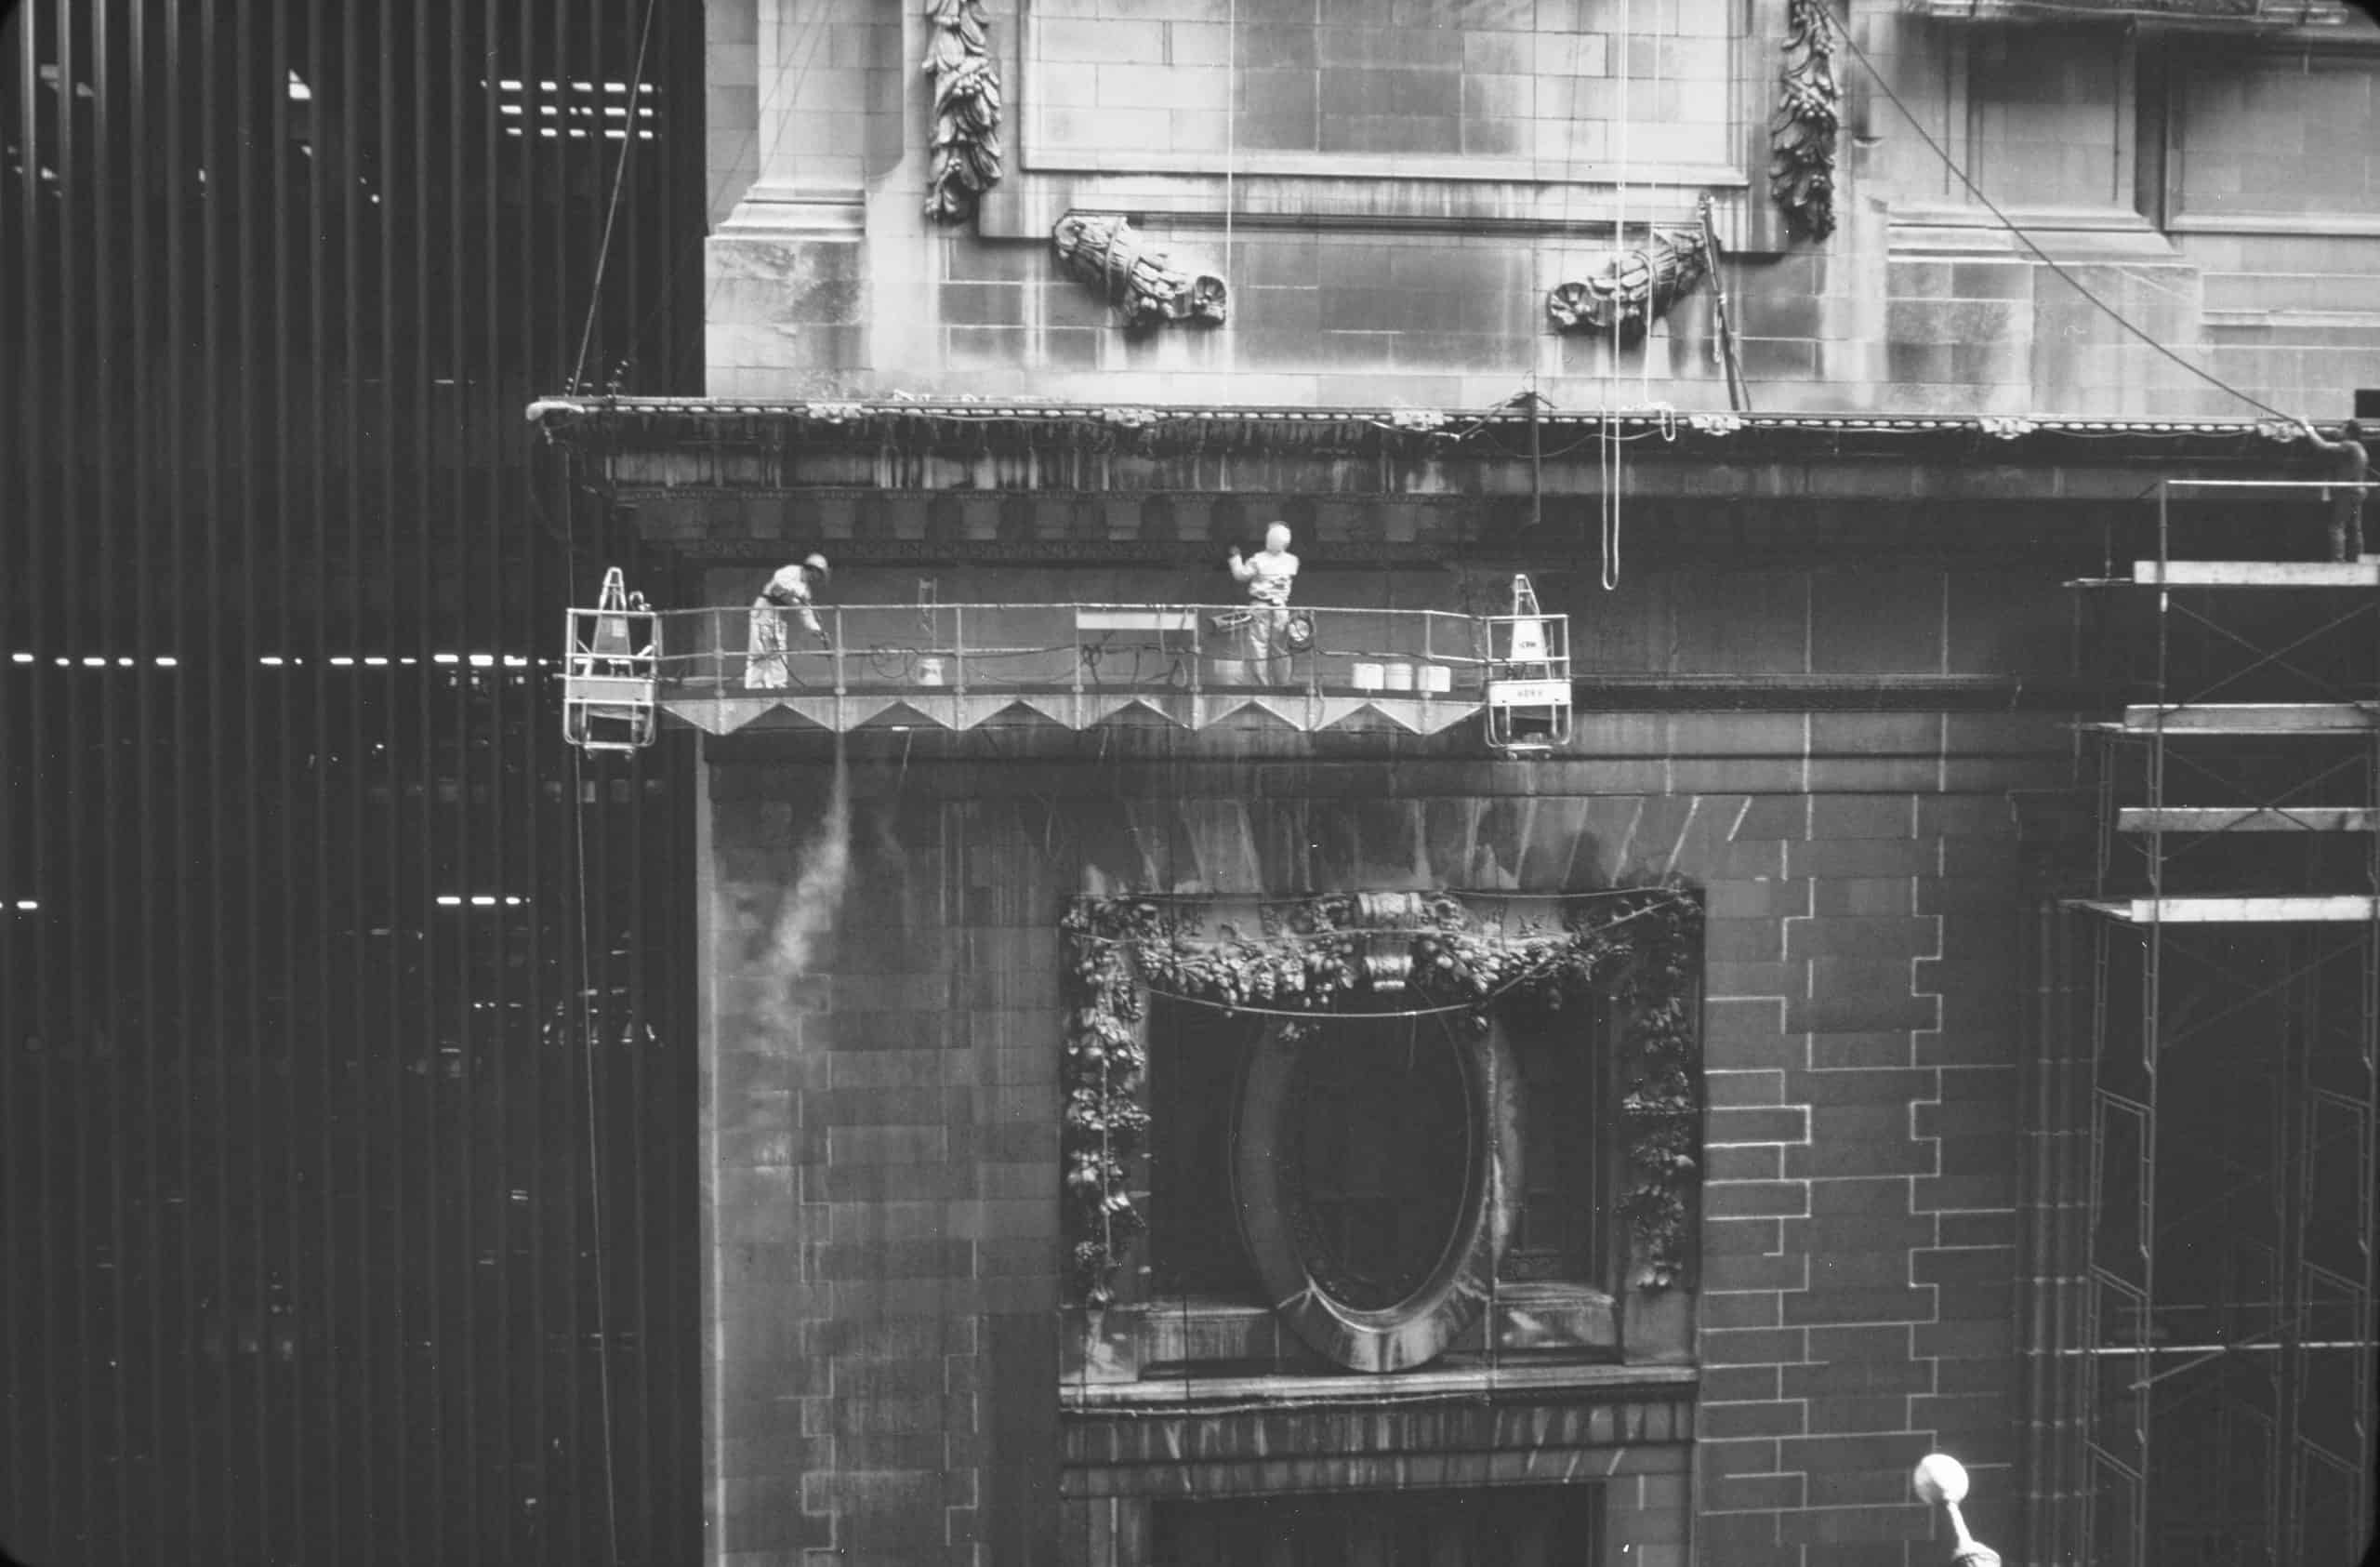 PROSOCO products were used to clean the extremely dirty exterior of Grand Central Station.